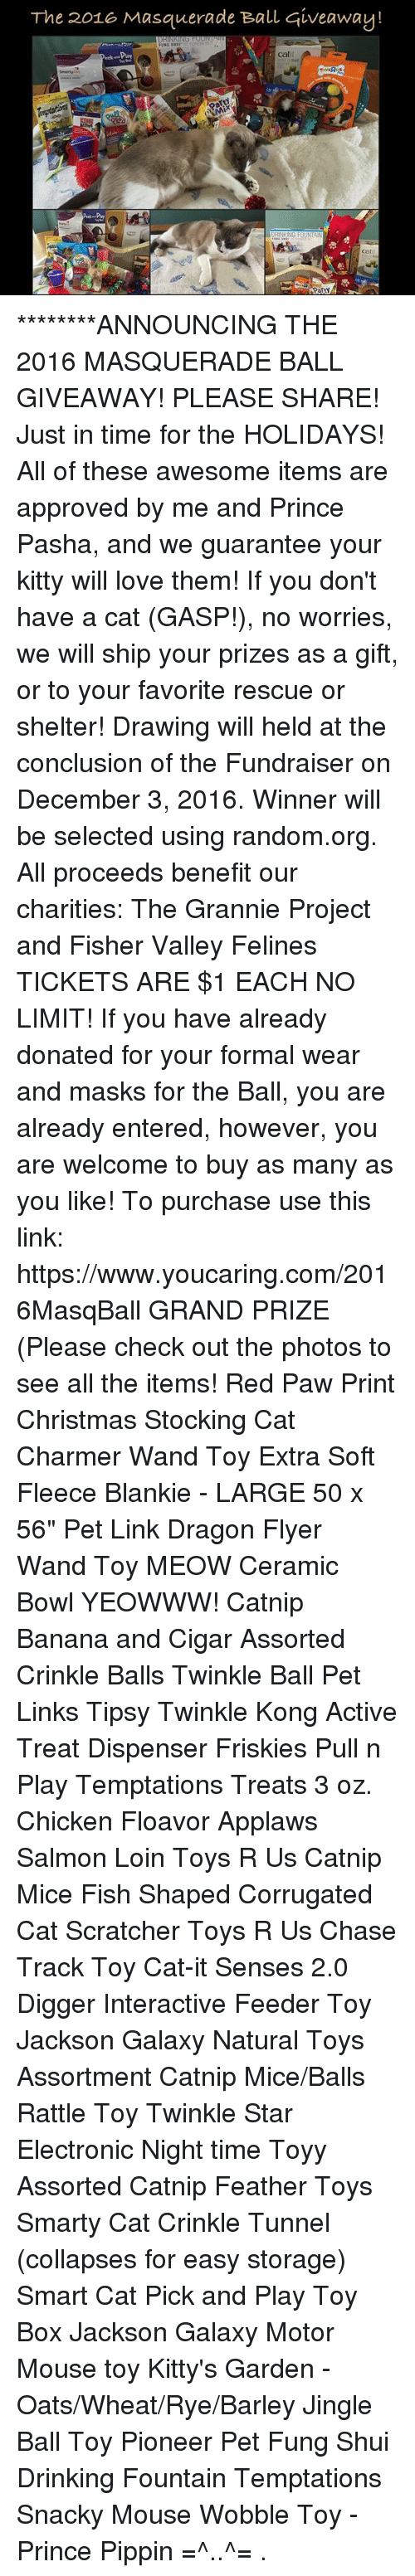 """Boxing, Jackson Galaxy, and Kitties: The 2016 Masquerade Ball giveaway!  DRINNNU.  cat  eek Play  RiNKNG FOUNTAIN  catil ********ANNOUNCING THE 2016 MASQUERADE BALL GIVEAWAY!  PLEASE SHARE!  Just in time for the HOLIDAYS! All of these awesome items are approved by me and Prince Pasha, and we guarantee your kitty will love them! If you don't have a cat (GASP!), no worries, we will ship your prizes as a gift, or to your favorite rescue or shelter! Drawing will held at the conclusion of the Fundraiser on December 3, 2016. Winner will be selected using random.org.  All proceeds benefit our charities: The Grannie Project and Fisher Valley Felines  TICKETS ARE $1 EACH NO LIMIT! If you have already donated for your formal wear and masks for the Ball, you are already entered, however, you are welcome to buy as many as you like! To purchase use this link:  https://www.youcaring.com/2016MasqBall  GRAND PRIZE (Please check out the photos to see all the items!  Red Paw Print Christmas Stocking Cat Charmer Wand Toy Extra Soft Fleece Blankie - LARGE 50 x 56"""" Pet Link Dragon Flyer Wand Toy MEOW Ceramic Bowl YEOWWW! Catnip Banana and Cigar Assorted Crinkle Balls Twinkle Ball Pet Links Tipsy Twinkle Kong Active Treat Dispenser Friskies Pull n Play Temptations Treats 3 oz. Chicken Floavor Applaws Salmon Loin Toys R Us Catnip Mice Fish Shaped Corrugated Cat Scratcher Toys R Us Chase Track Toy Cat-it Senses 2.0 Digger Interactive Feeder Toy Jackson Galaxy Natural Toys Assortment Catnip Mice/Balls Rattle Toy Twinkle Star Electronic Night time Toyy Assorted Catnip Feather Toys Smarty Cat Crinkle Tunnel (collapses for easy storage) Smart Cat Pick and Play Toy Box Jackson Galaxy Motor Mouse toy Kitty's Garden - Oats/Wheat/Rye/Barley Jingle Ball Toy Pioneer Pet Fung Shui Drinking Fountain Temptations Snacky Mouse Wobble Toy  - Prince Pippin =^..^= ."""